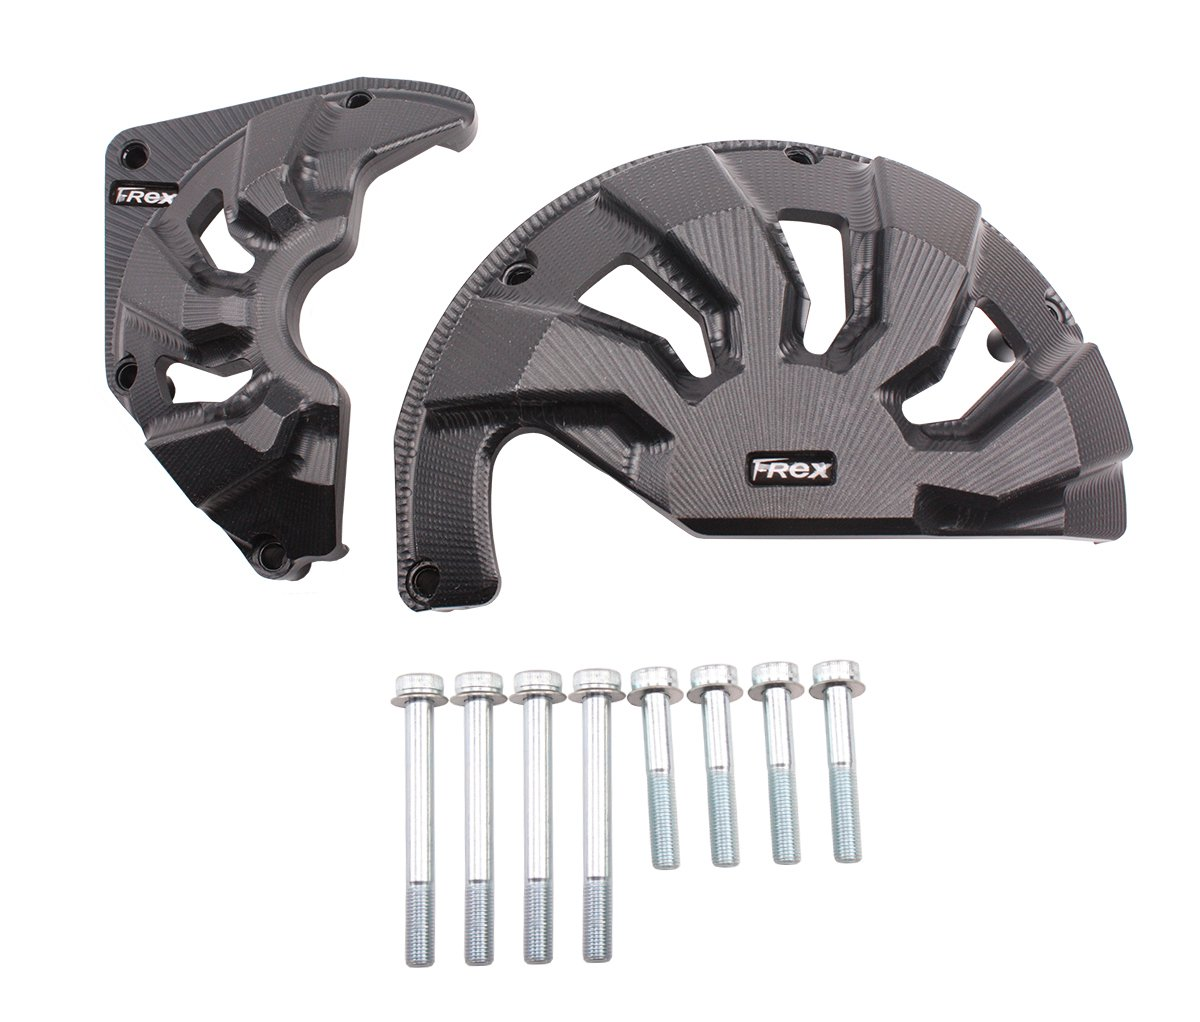 T-Rex Racing KTM 690 Enduro R / SMC R Engine Case Covers